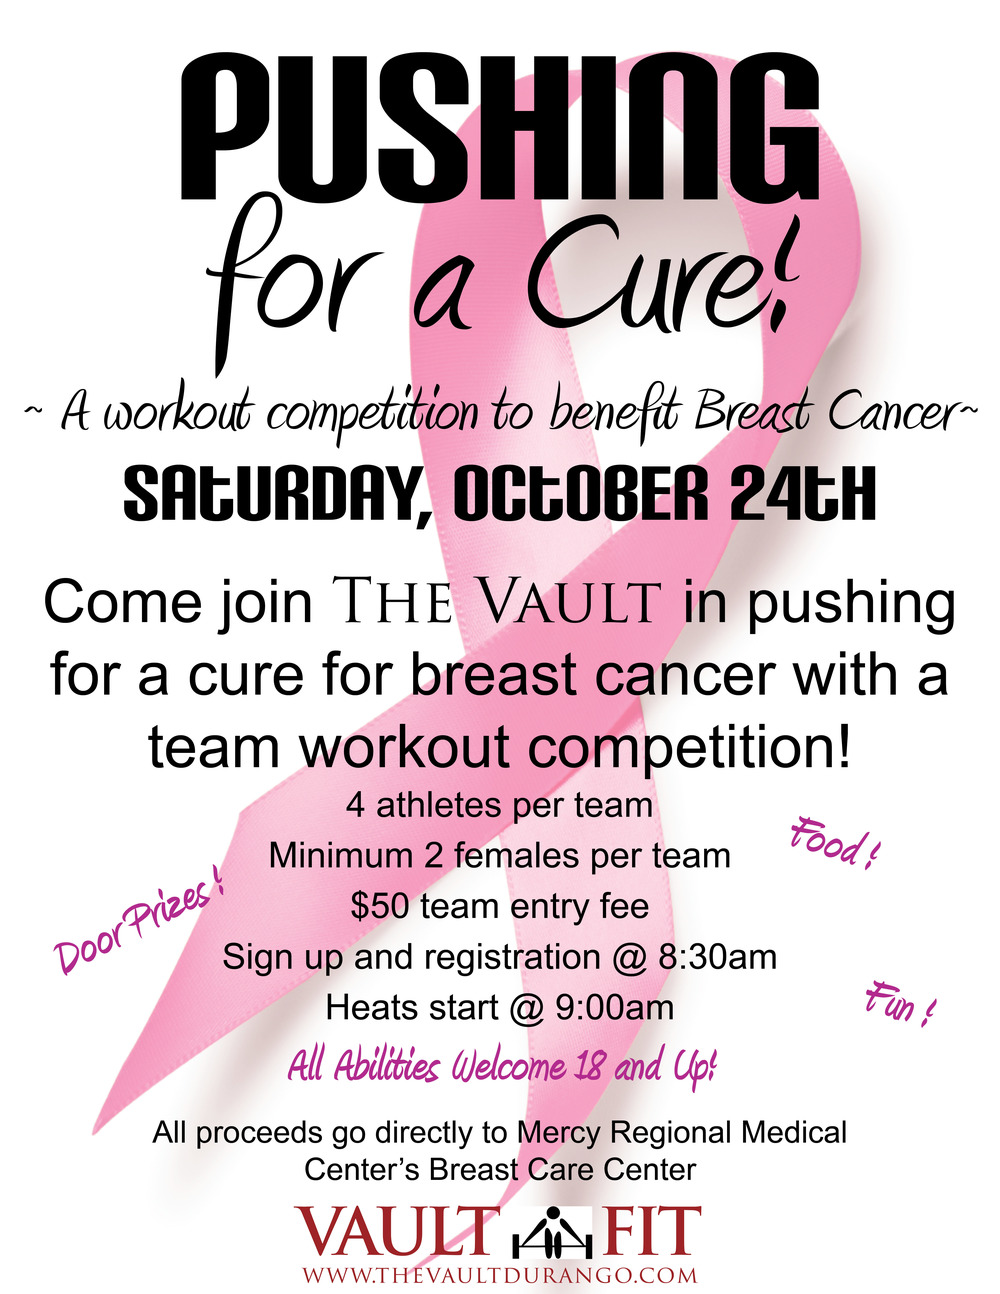 Pushing for a Cure Flyer.jpg